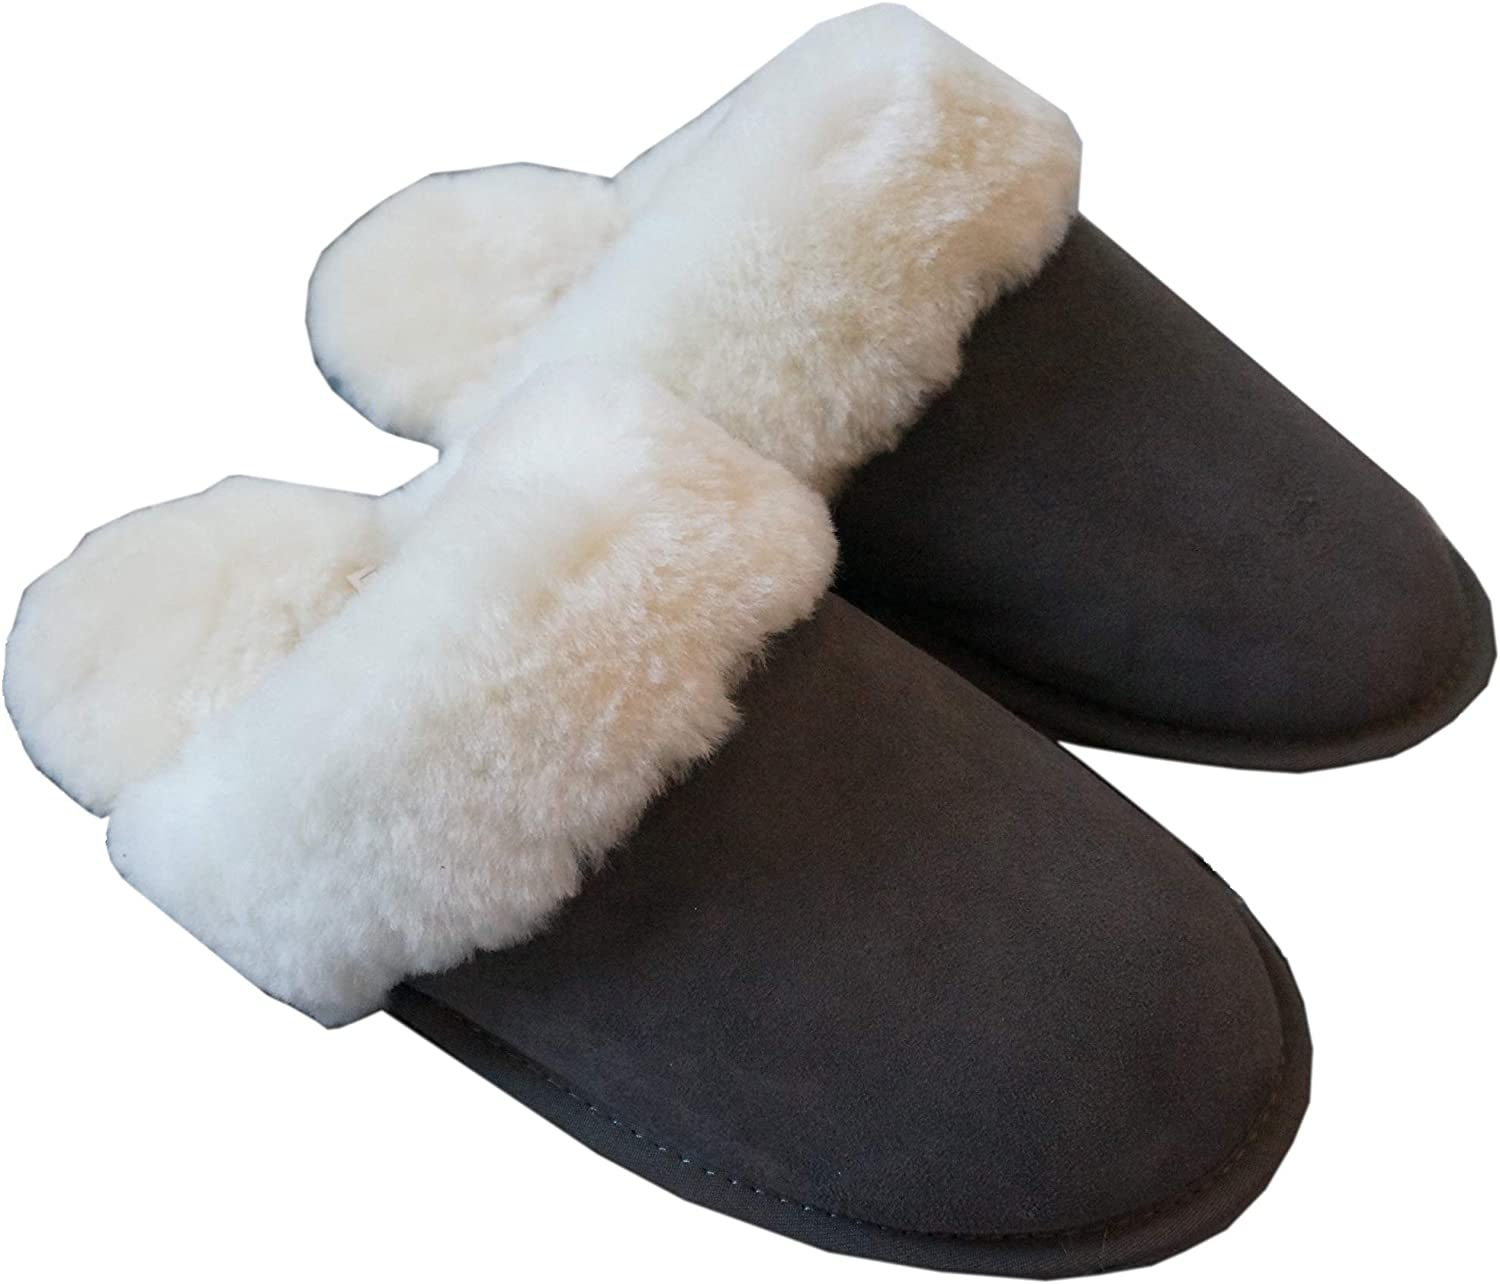 Authentic Sheepskin Wool Slippers - Canadian Brand